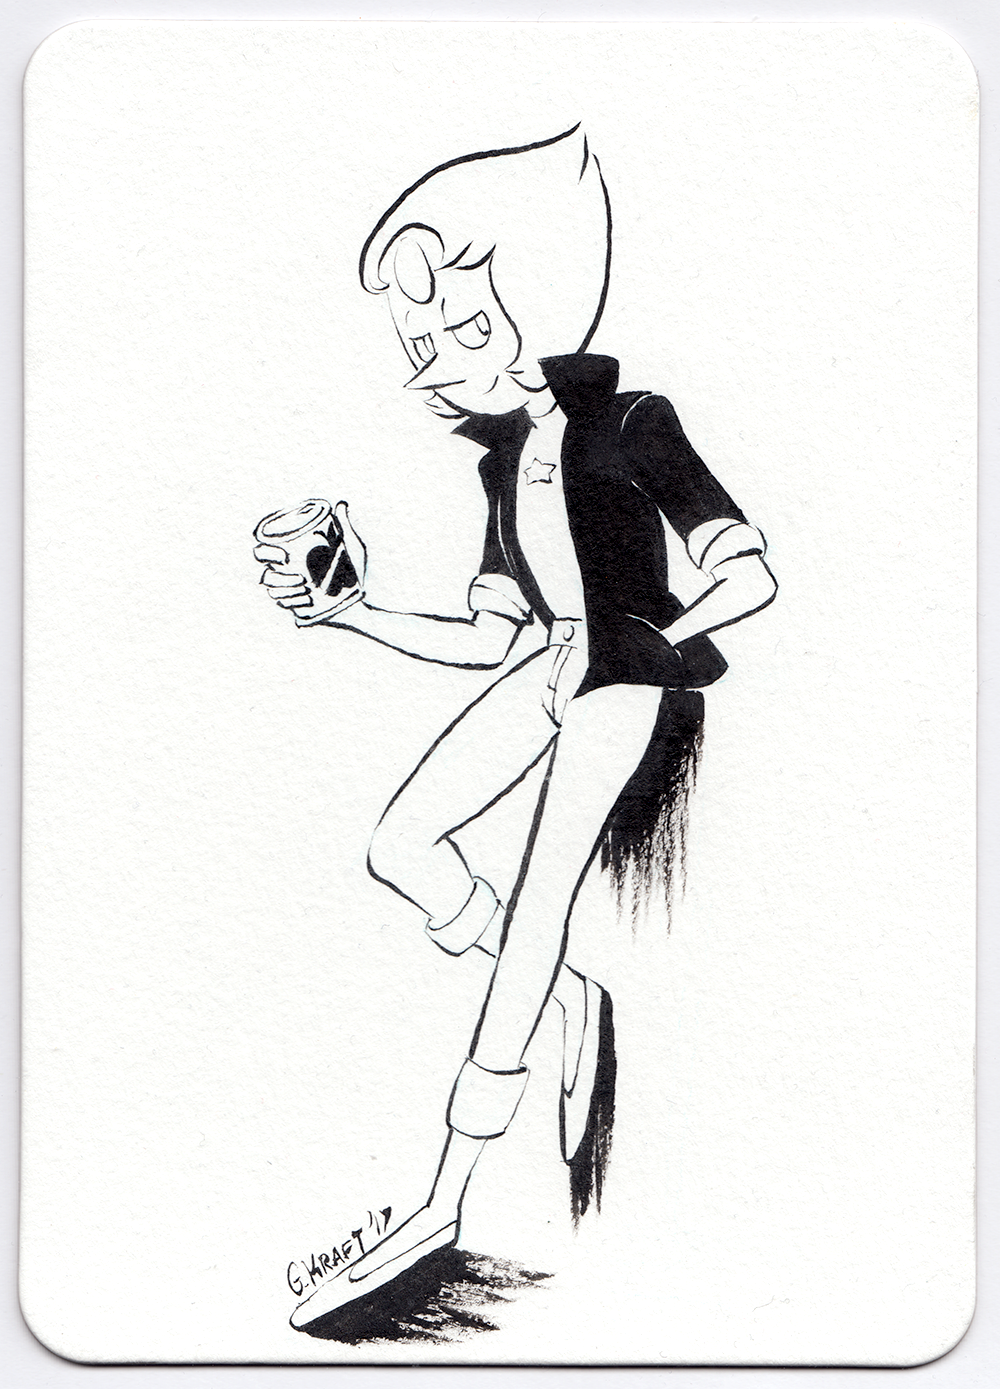 Bad Pearl for a brush pen commission.